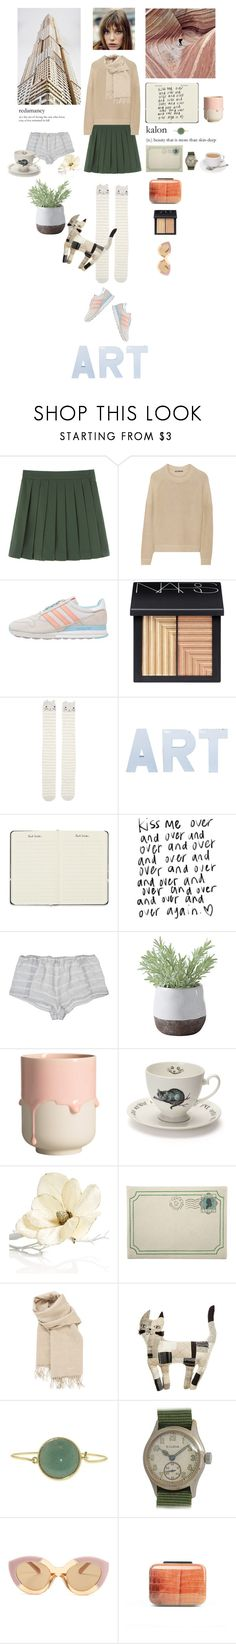 """""""Art rock"""" by teodora-teddy ❤ liked on Polyvore featuring Vince, adidas Originals, NARS Cosmetics, Accessorize, Ciao Bella, Paul Smith, Only Hearts, Torre & Tagus, Mrs Moore's Vintage Store and Holiday Lane"""